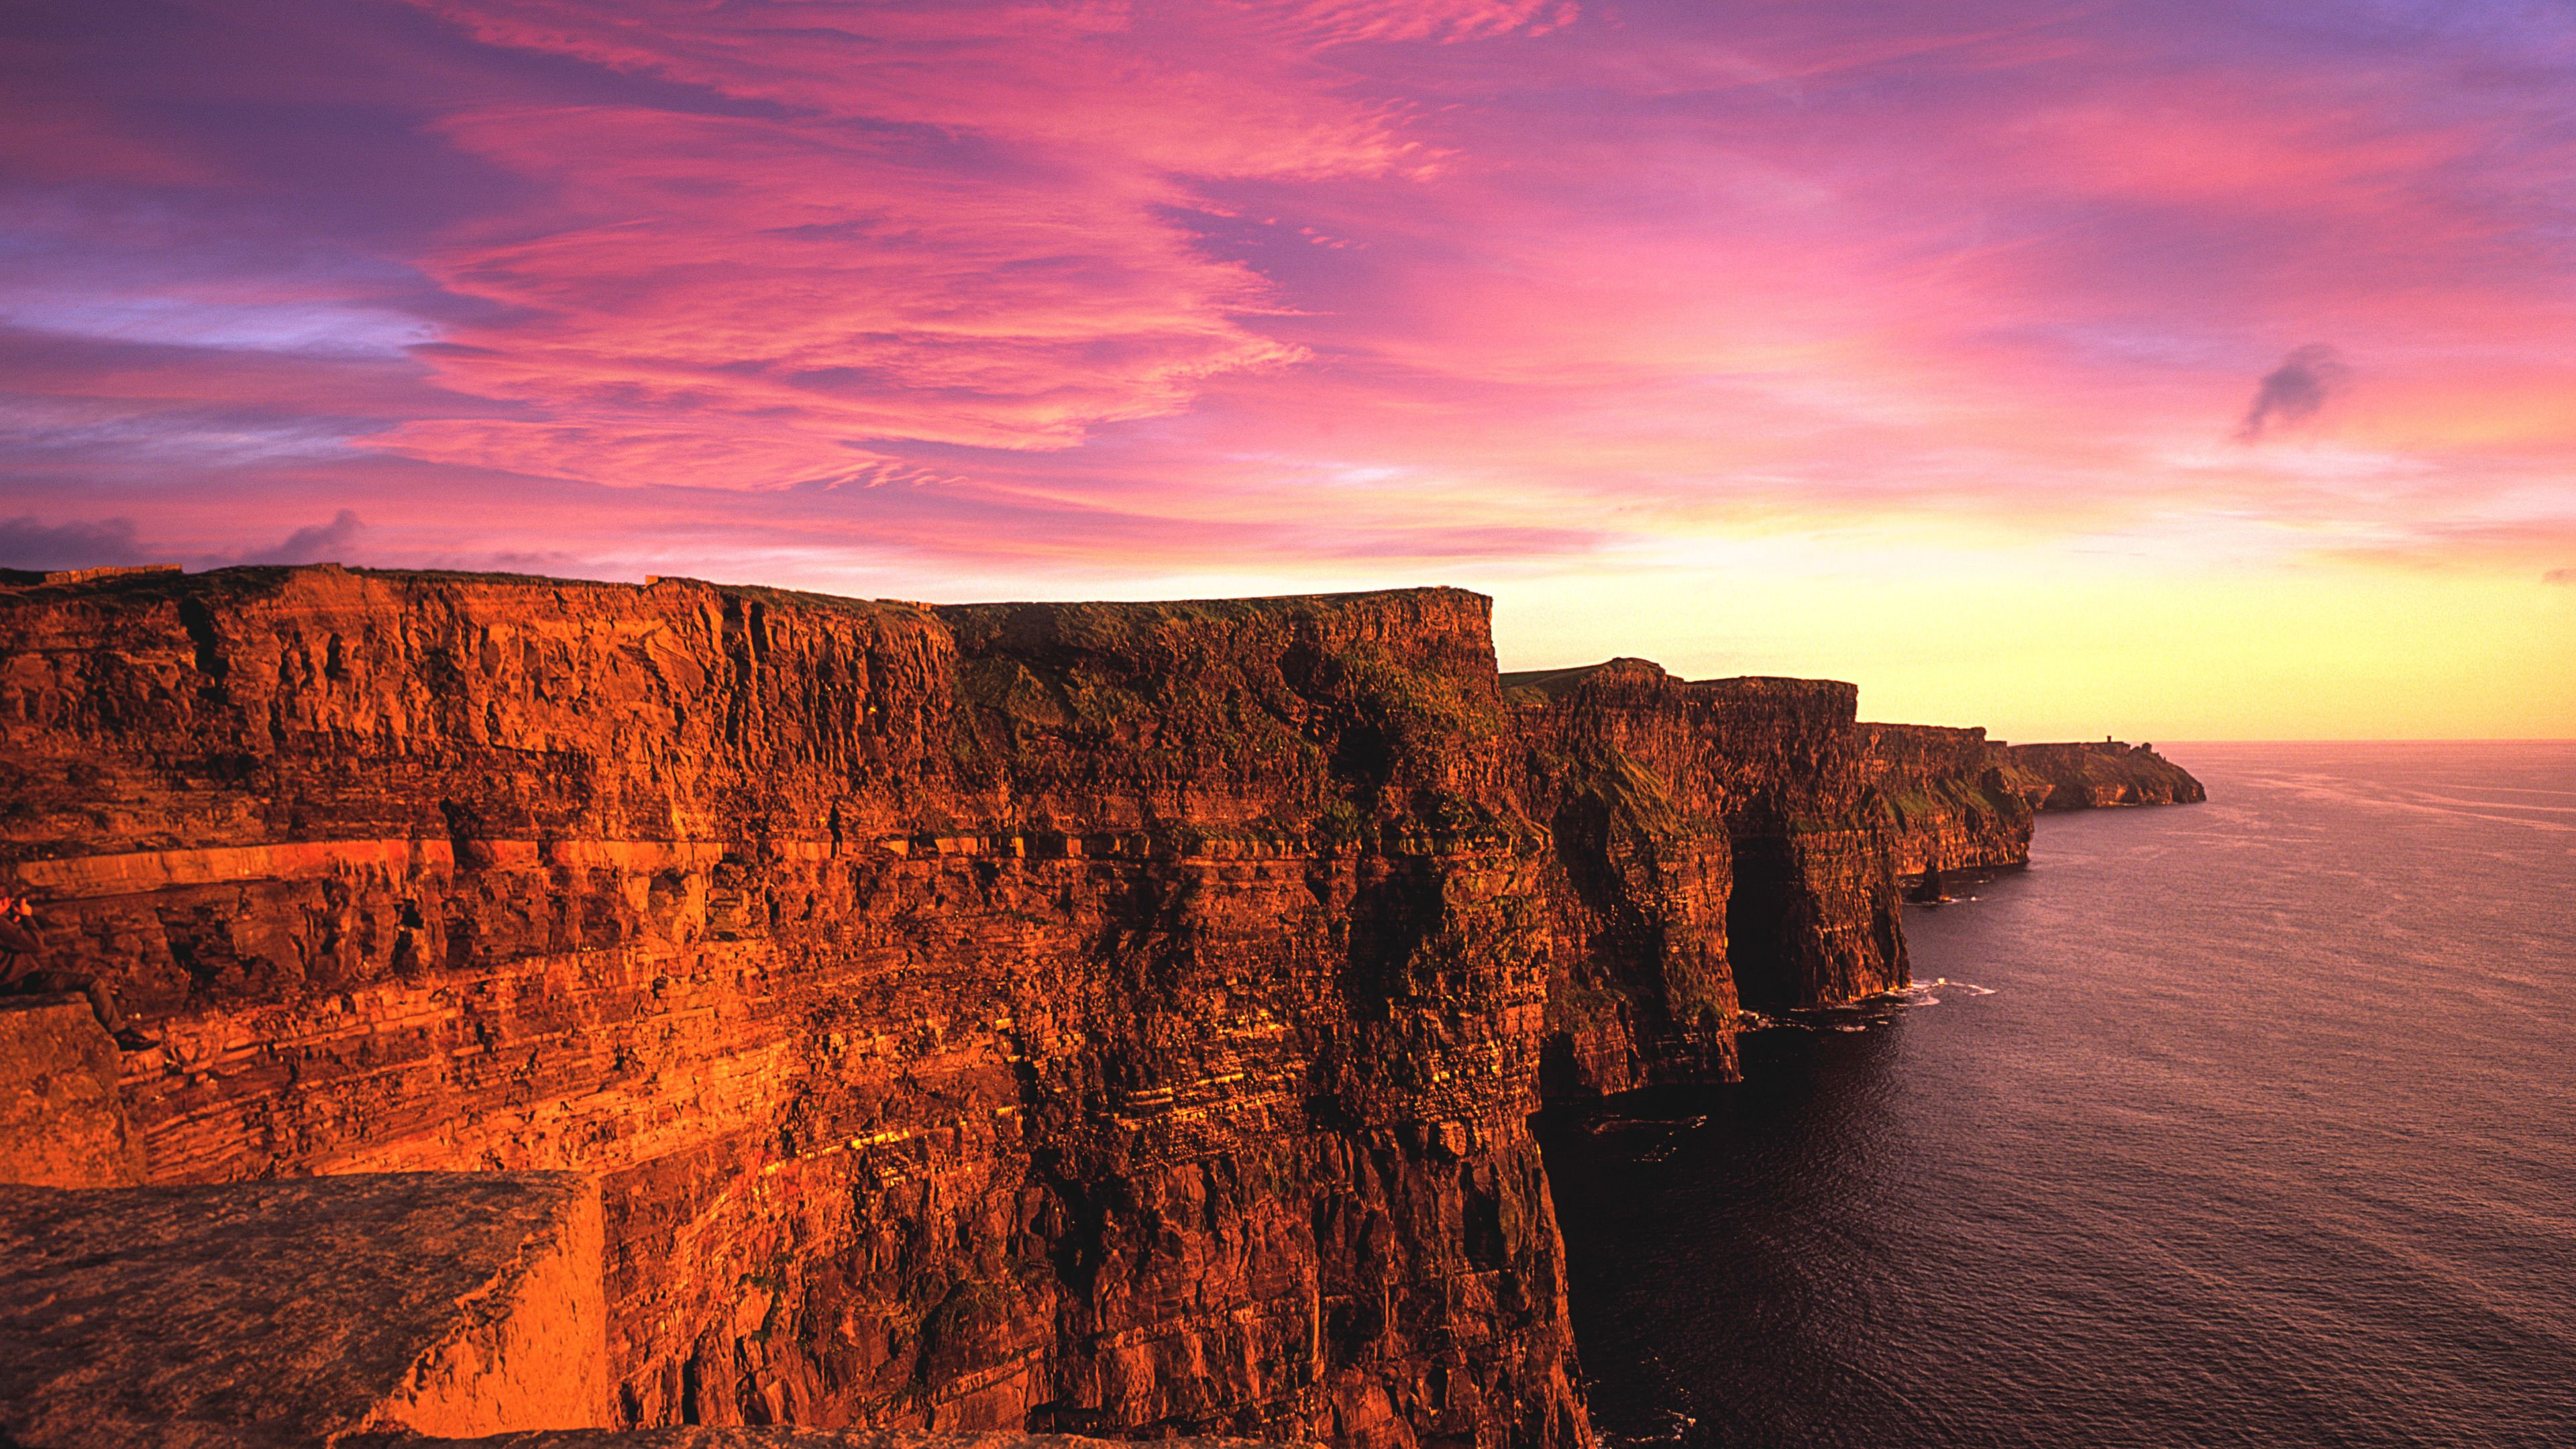 Vibrant sunset view of Cliffs of Moher.